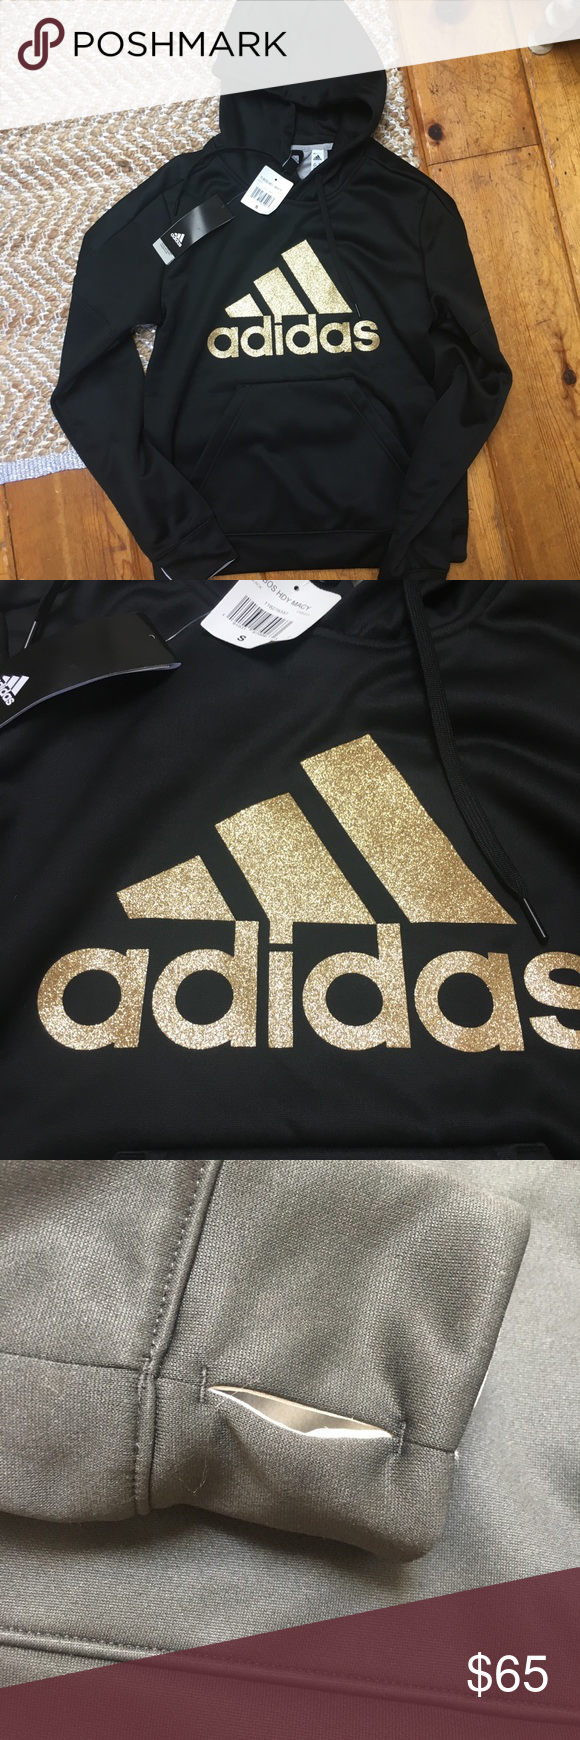 66b7942d5417 Adidas Black   Gold Trefoil Hoodie Small Brand new with sweatshirt with  tags. Has thumb